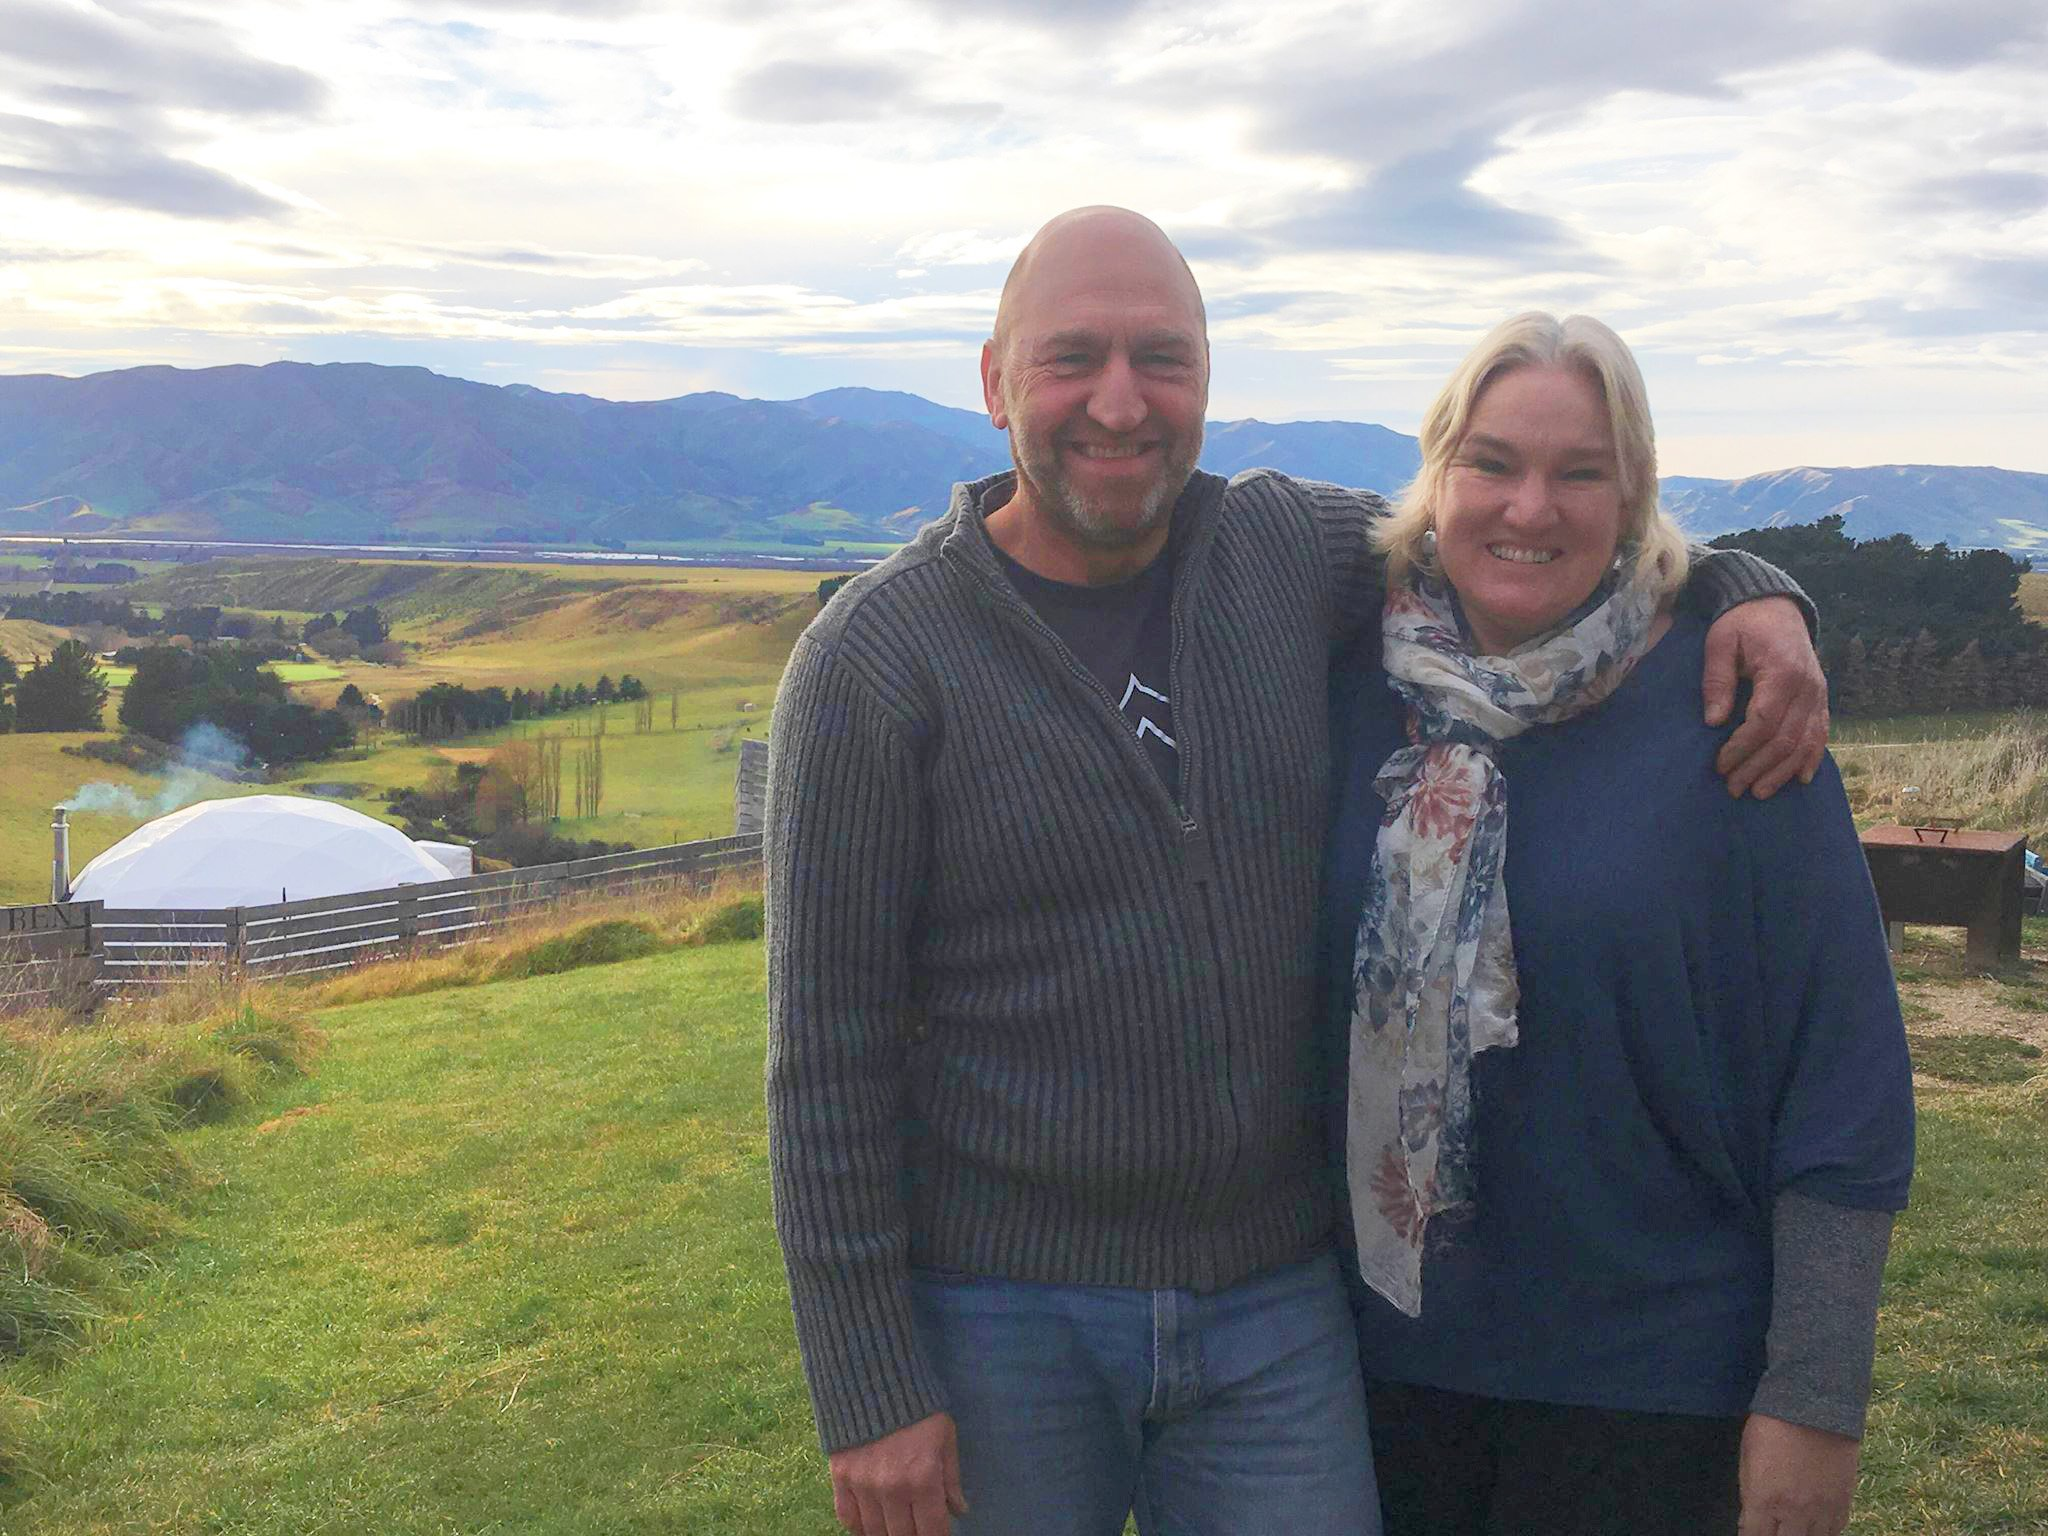 Down to earth and sharing the view, glamping style | Otago